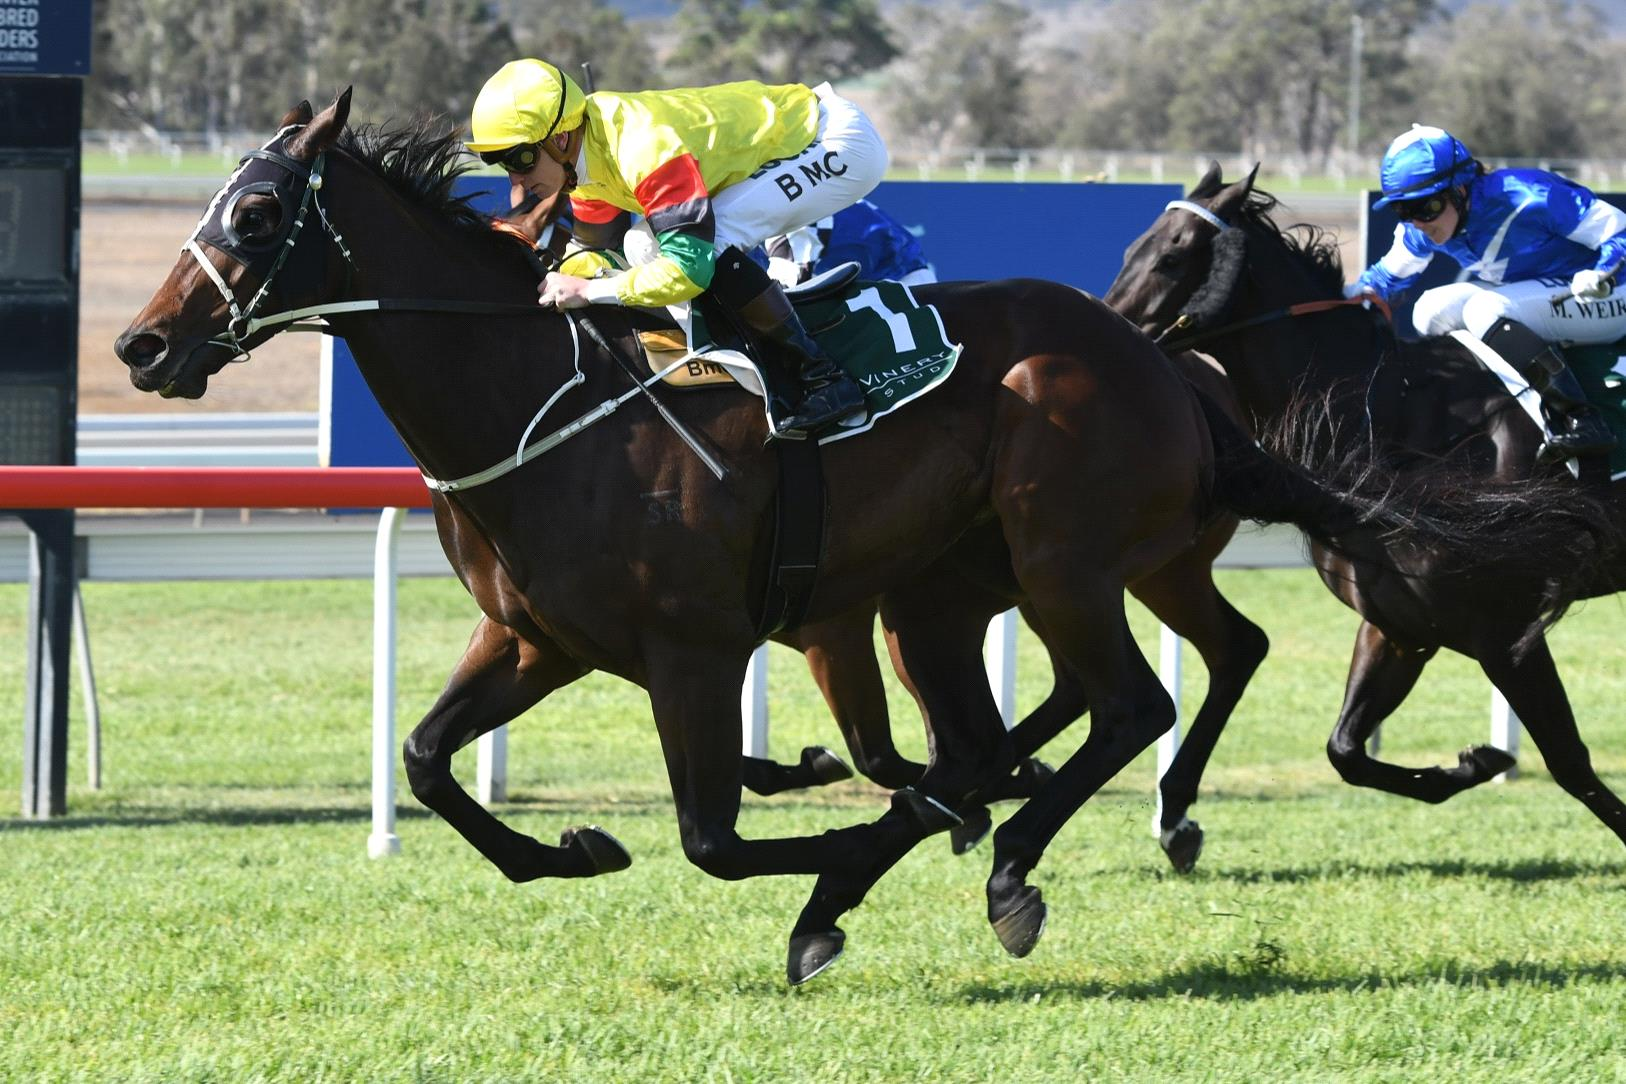 Akasaki winning the same race he contests on Saturday two years ago at Scone.